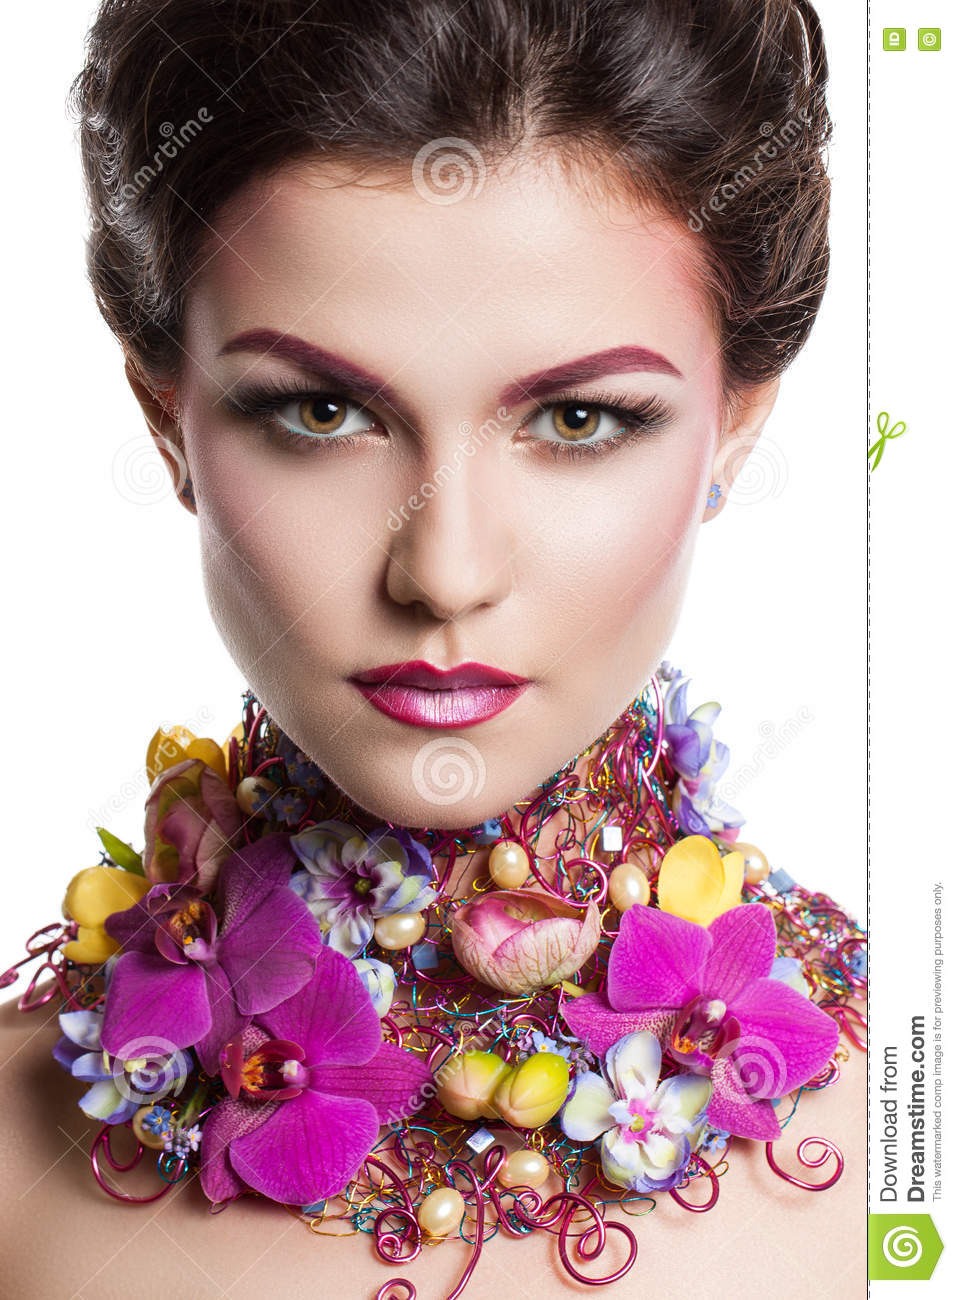 make the hair style fashion with flowers in hair and around 5145 | fashion beauty woman flowers her hair around her neck perfect creative make up hair style hairstyle bouquet 71300010